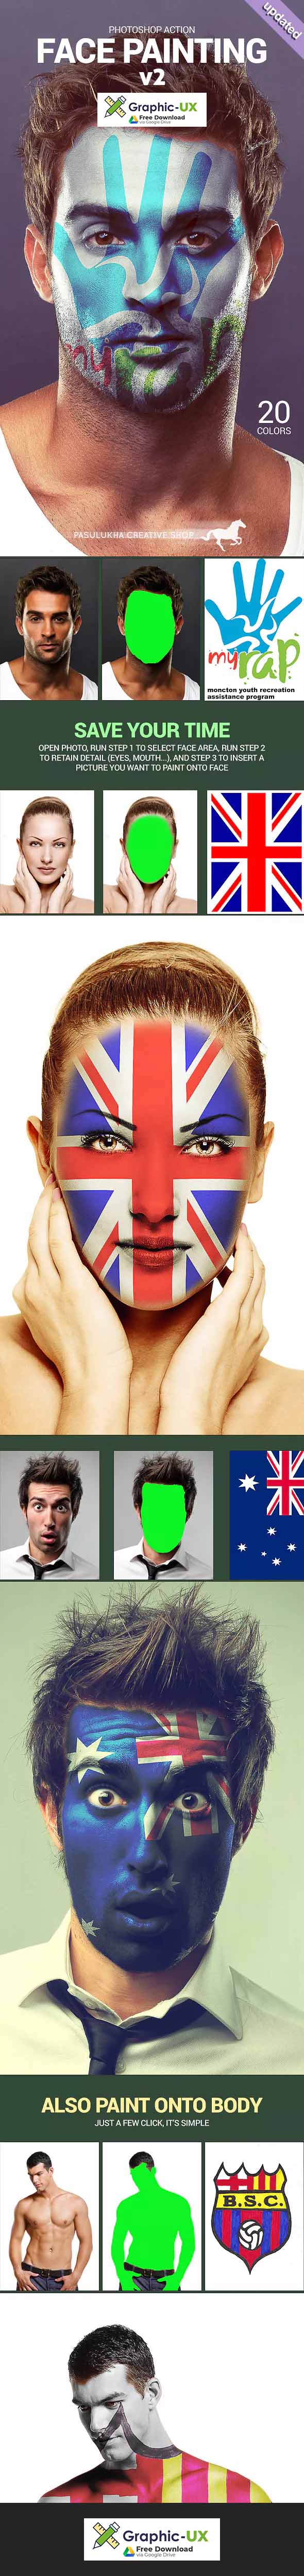 face painting photoshop action free download – GraphicUX